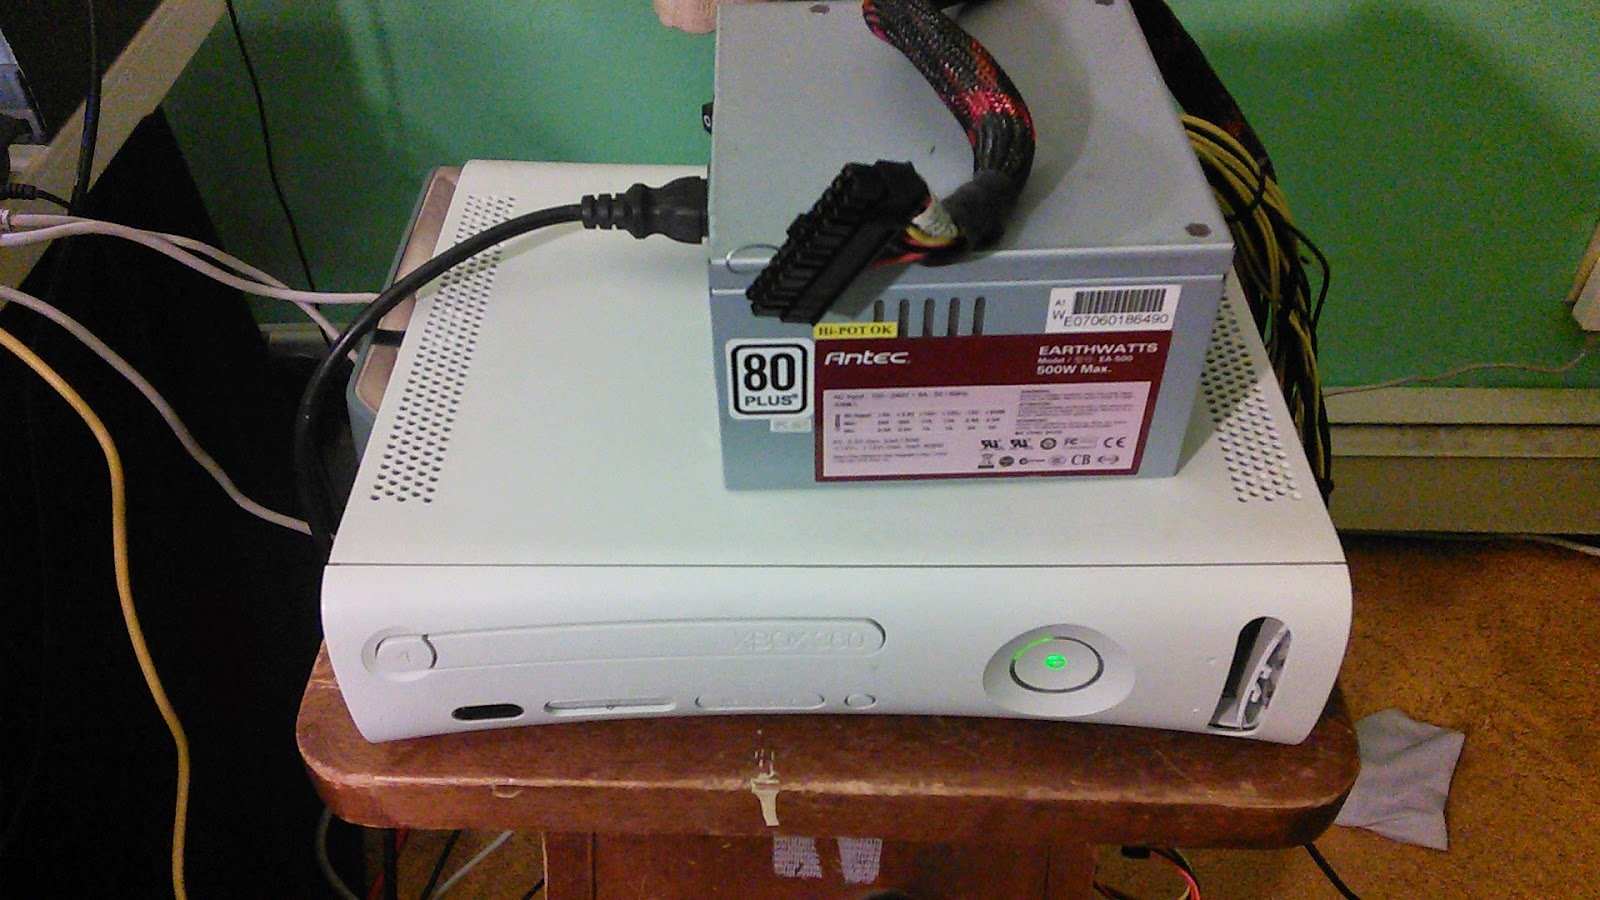 Wired a ATX Power Supply to a Xbox 360 | Realm of Espionage